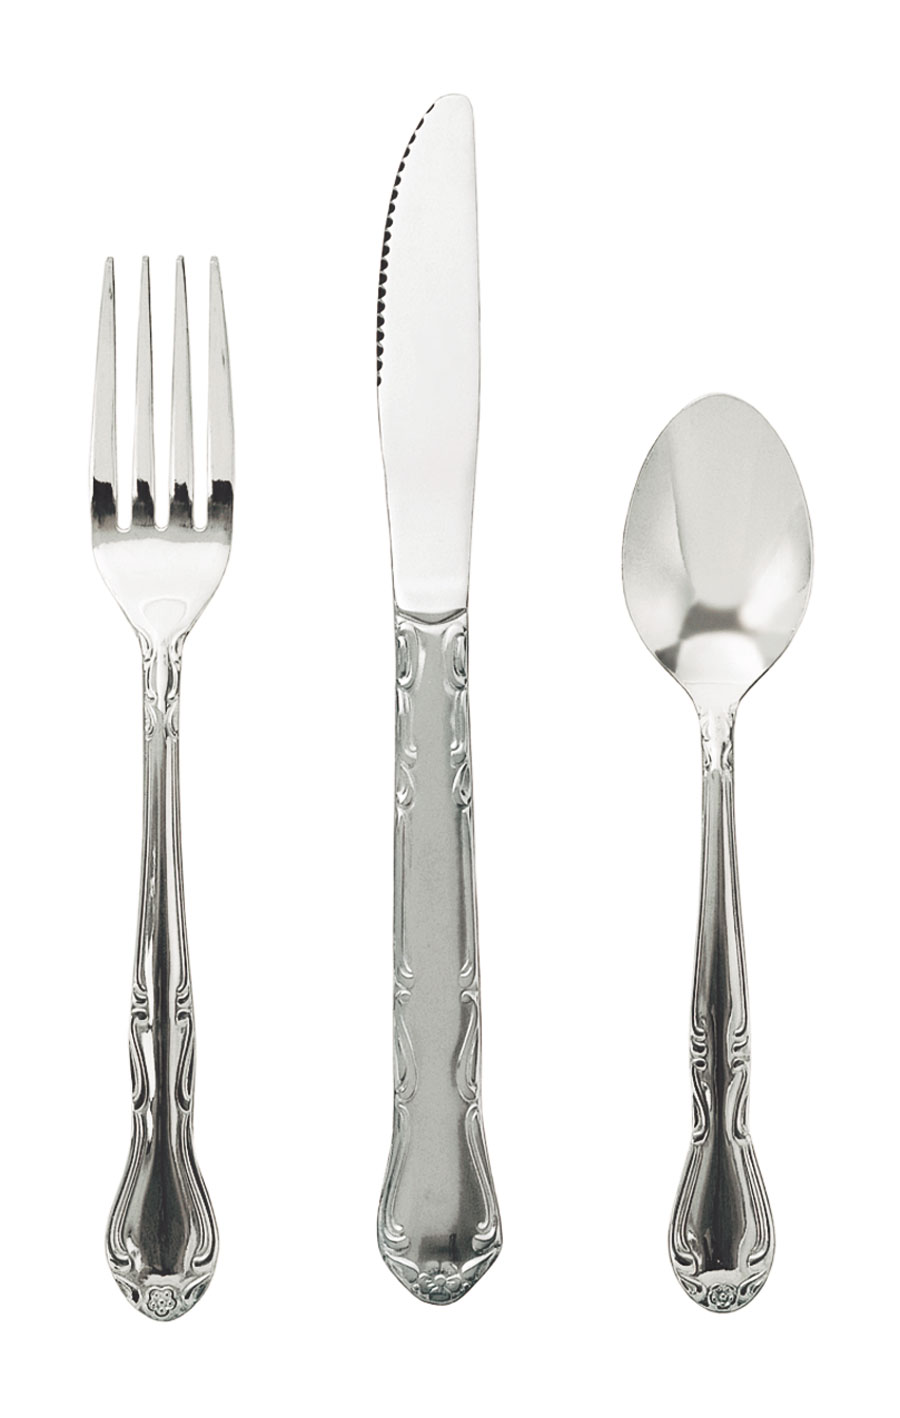 Update International CE-205 Bright Polish Claridge Dinner Fork - 1 doz